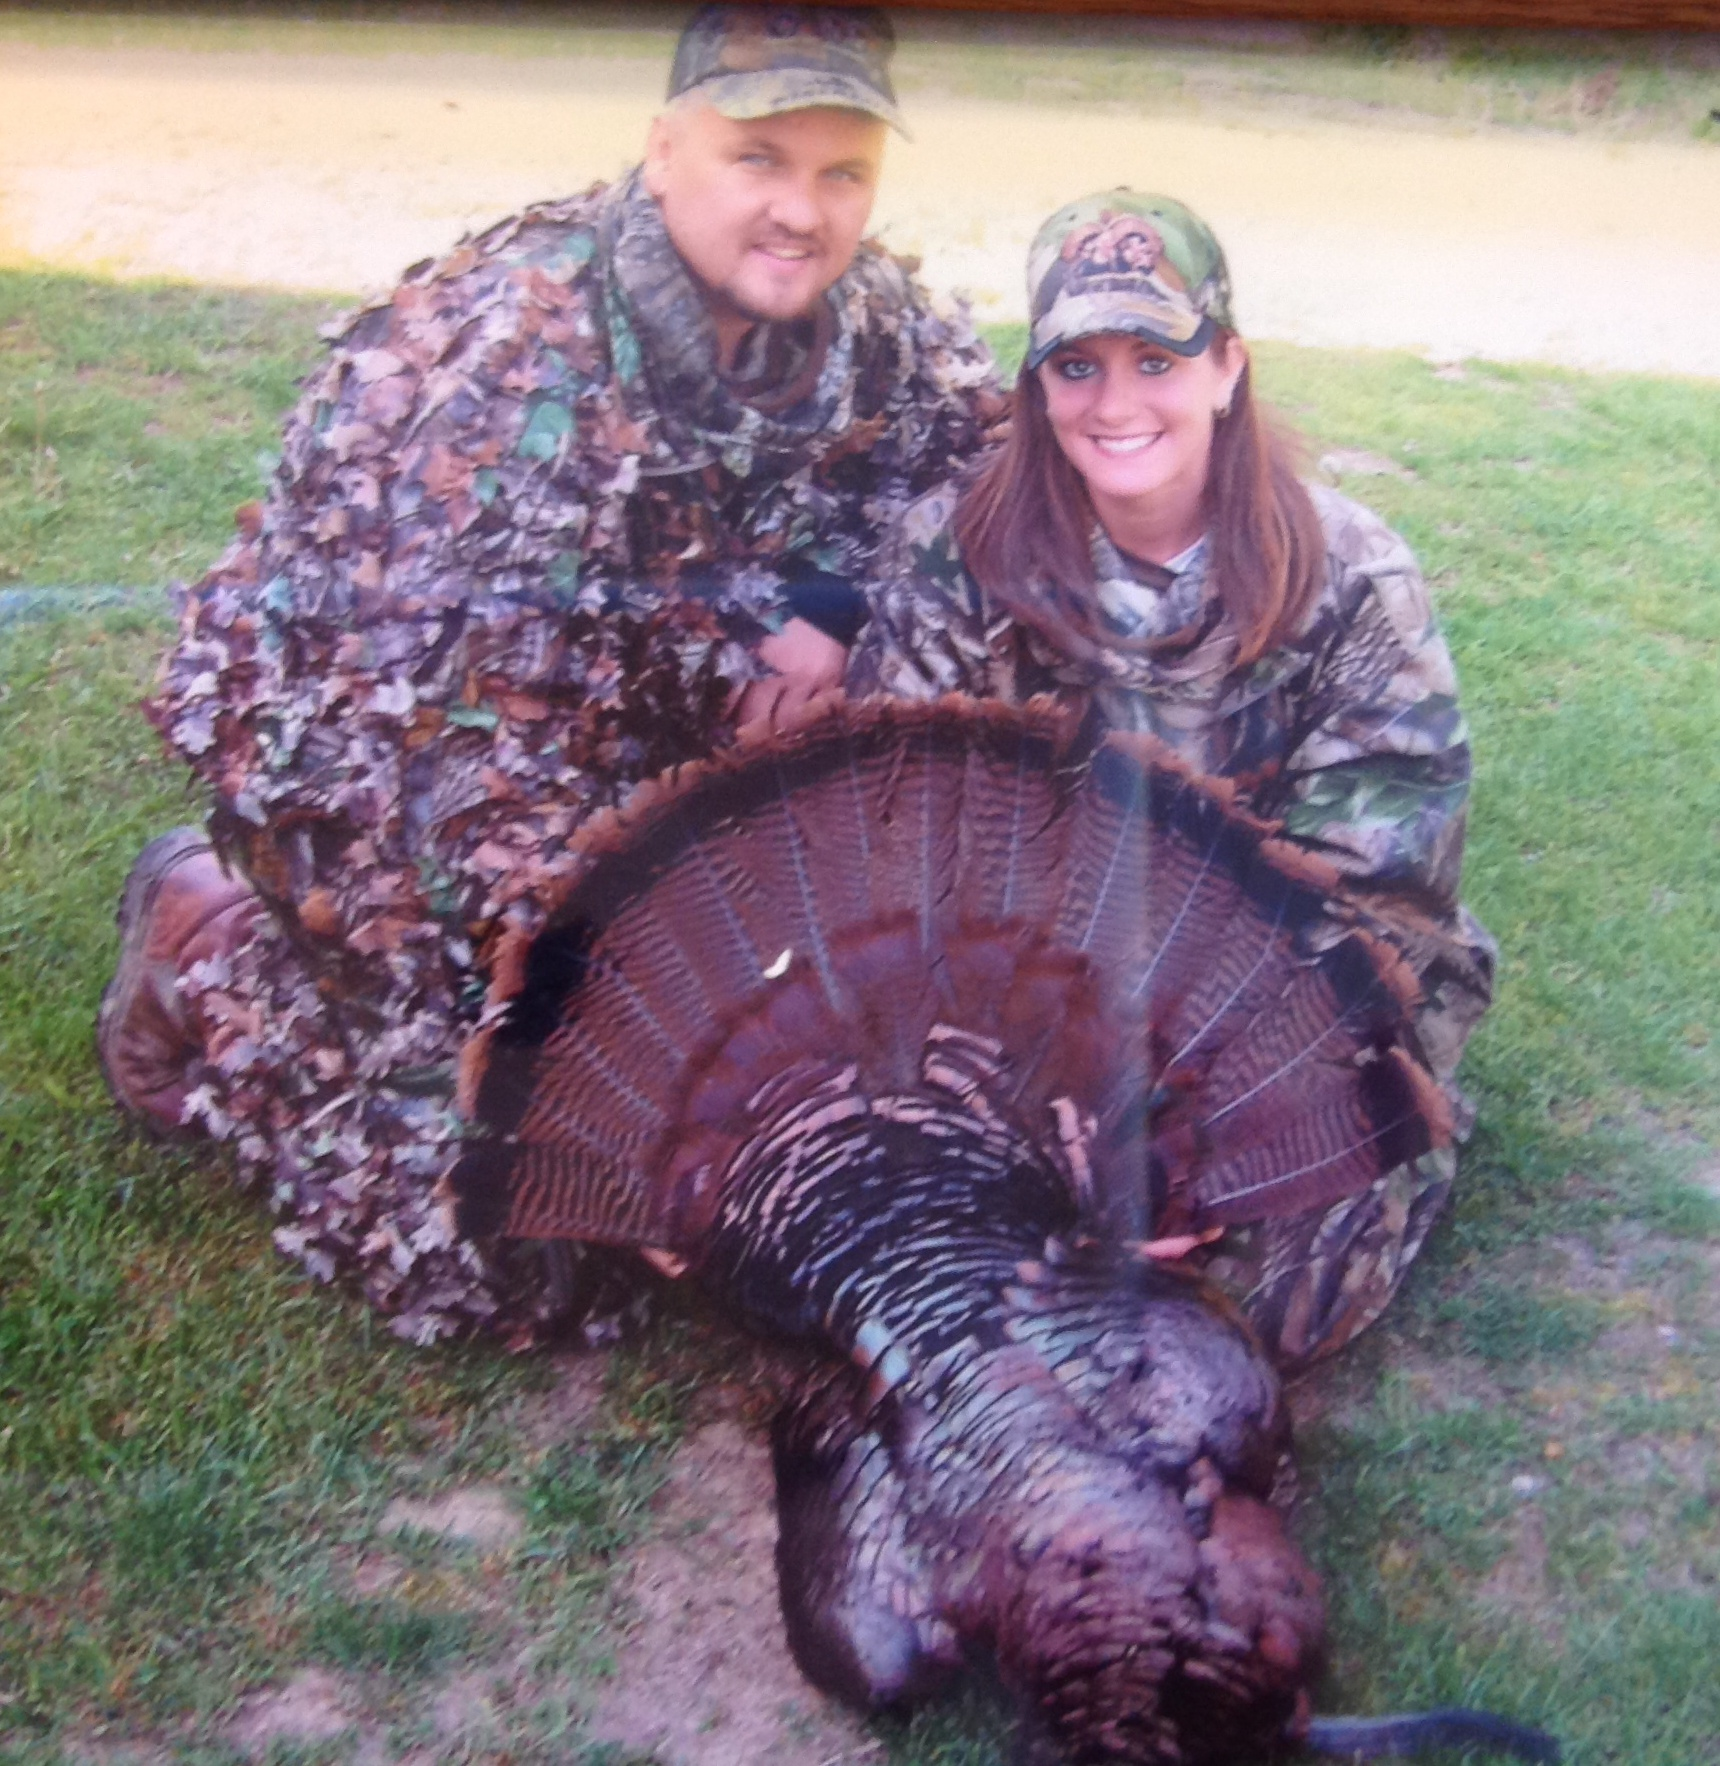 Dating and turkey hunting go hand and hand for these two